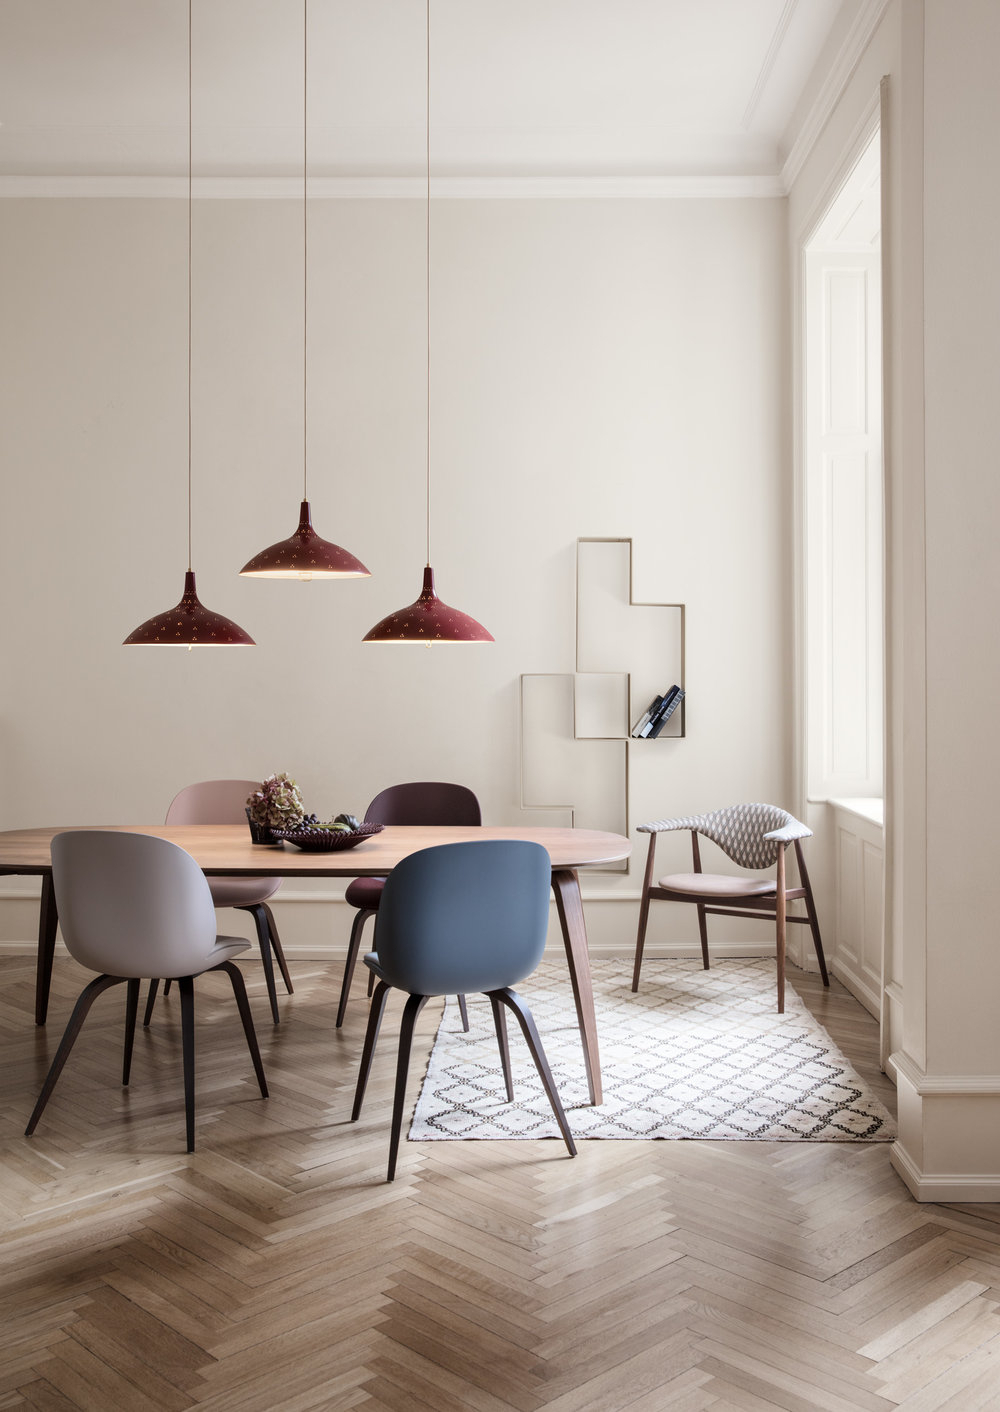 Dining Tables With Stained Ash Walnut pertaining to Latest Gubi Dining Table Collection Overview — Gubi